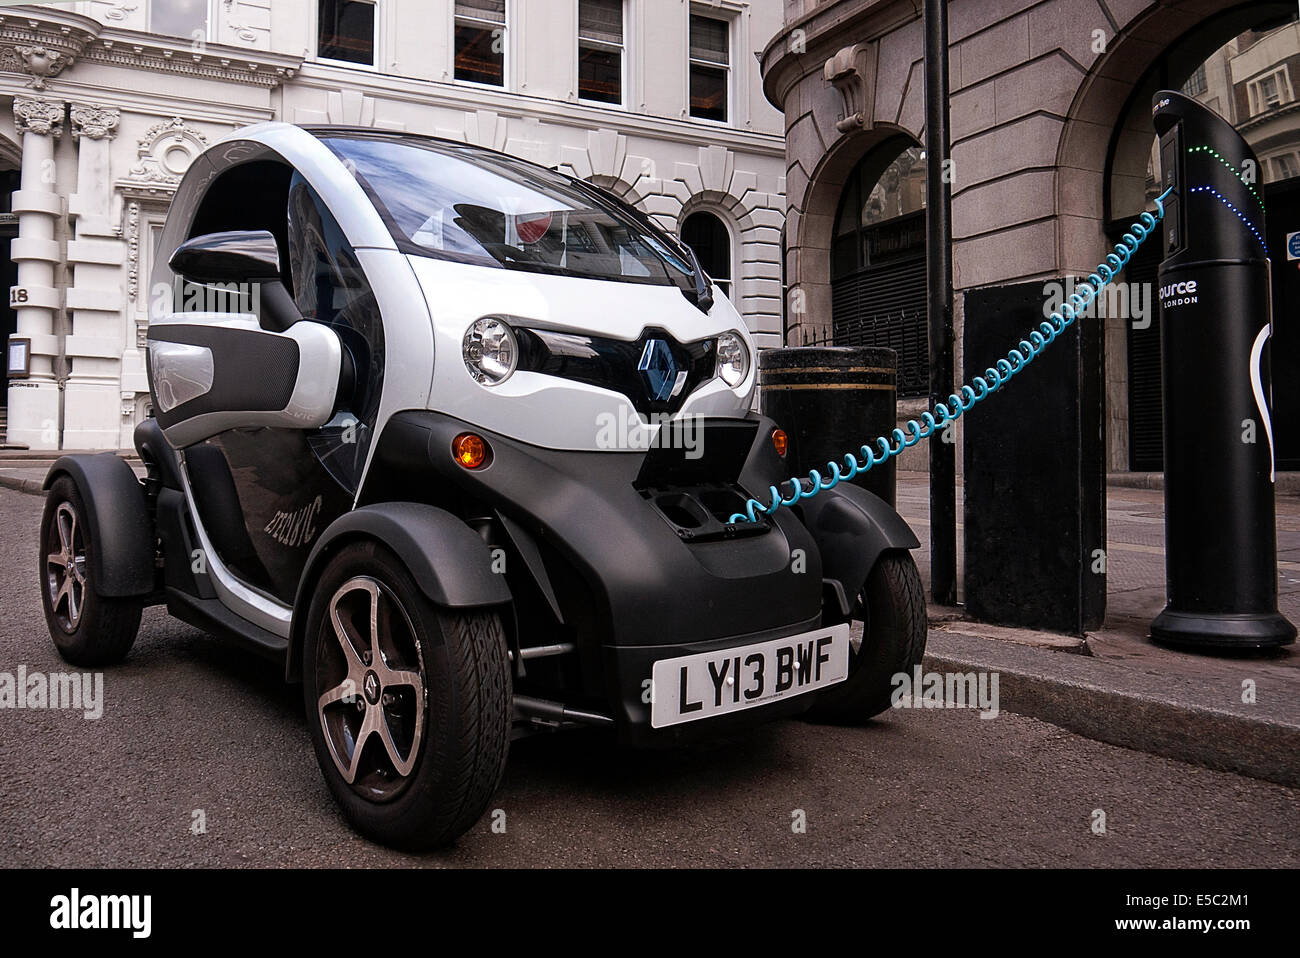 renault twizy electric car on charge in covent garden london stock photo 72180305 alamy. Black Bedroom Furniture Sets. Home Design Ideas